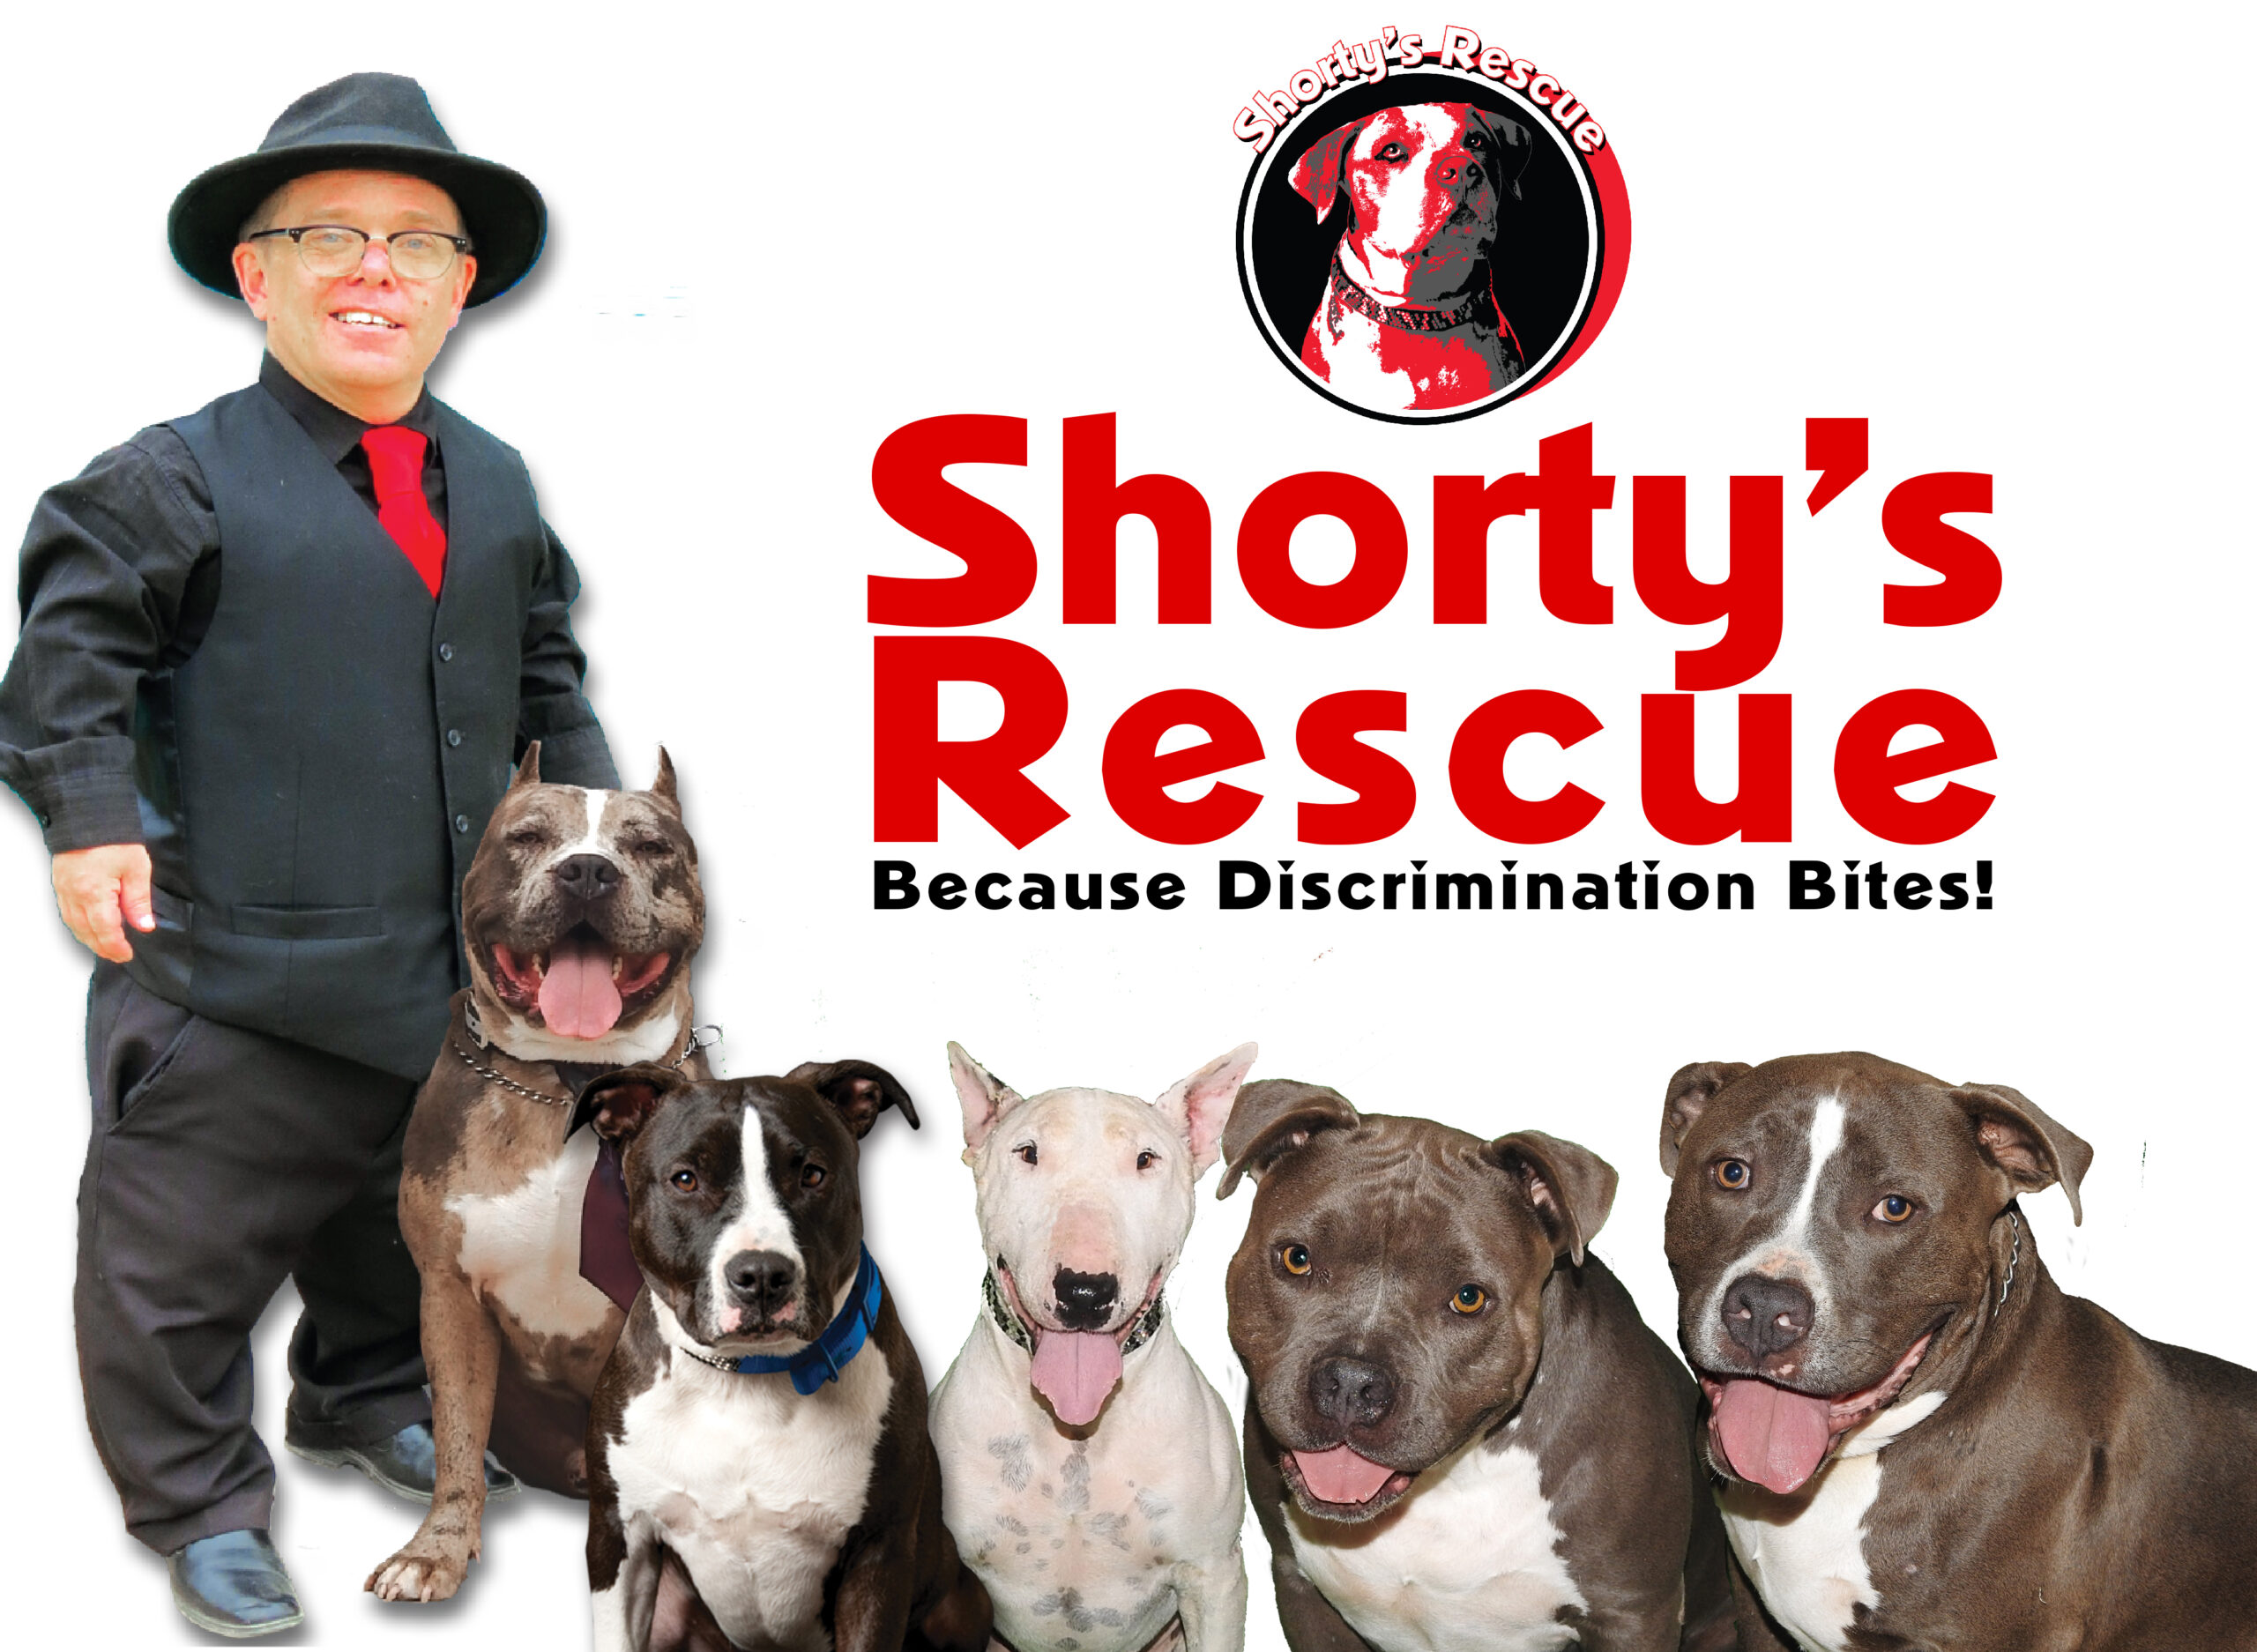 Shorty's Rescue - Because Discrimination Bites!